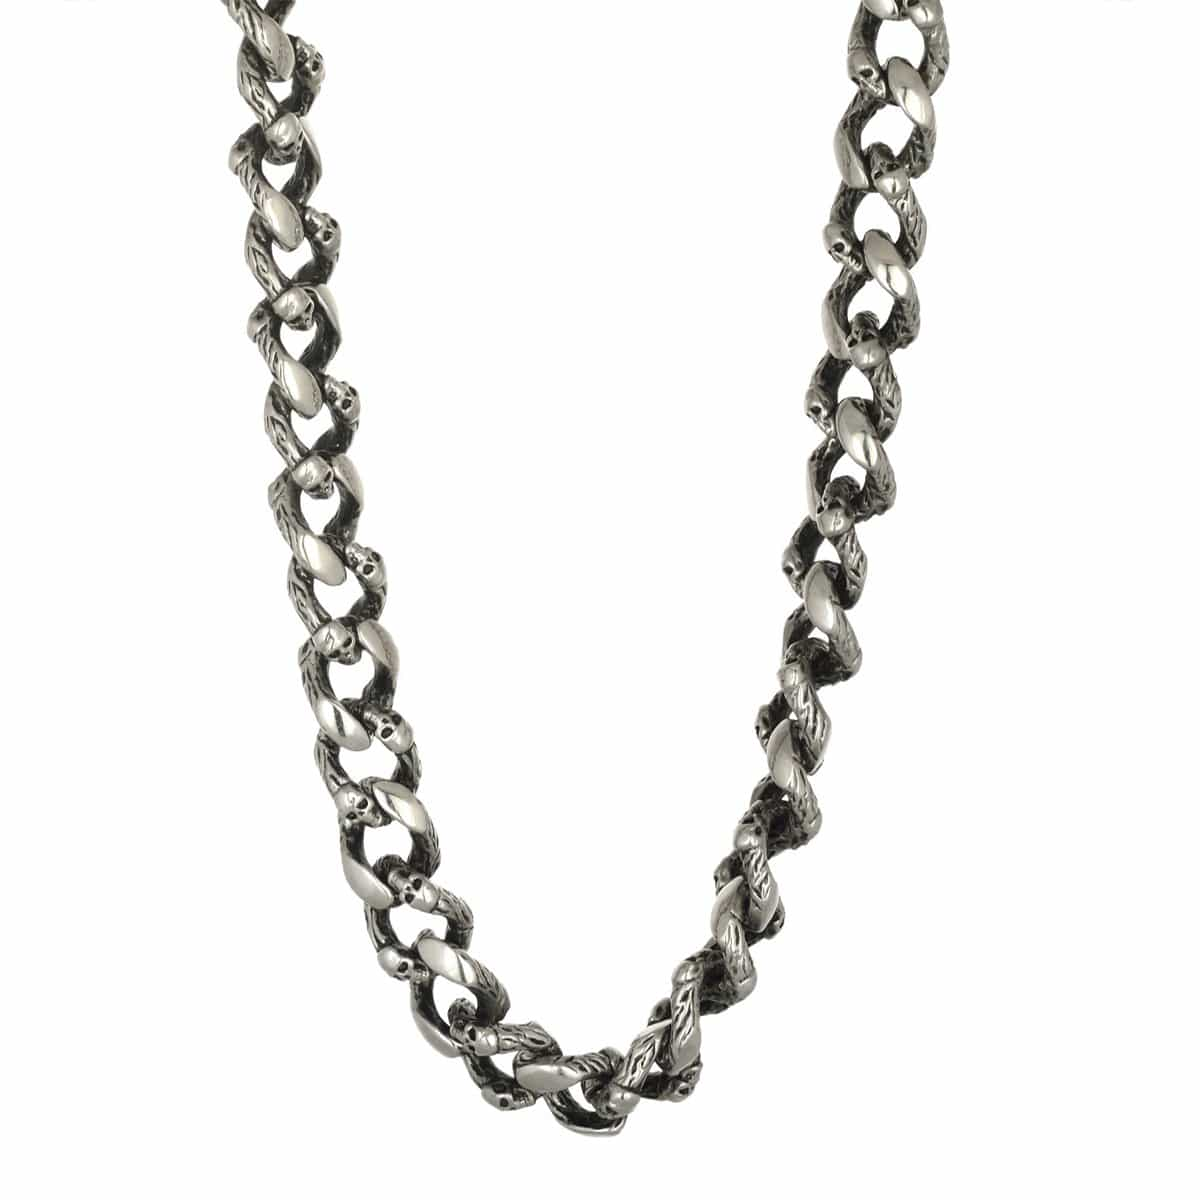 Thick Darkened Silver Stainless Steel Hammered Finish with Skull Design Link Chain Chains